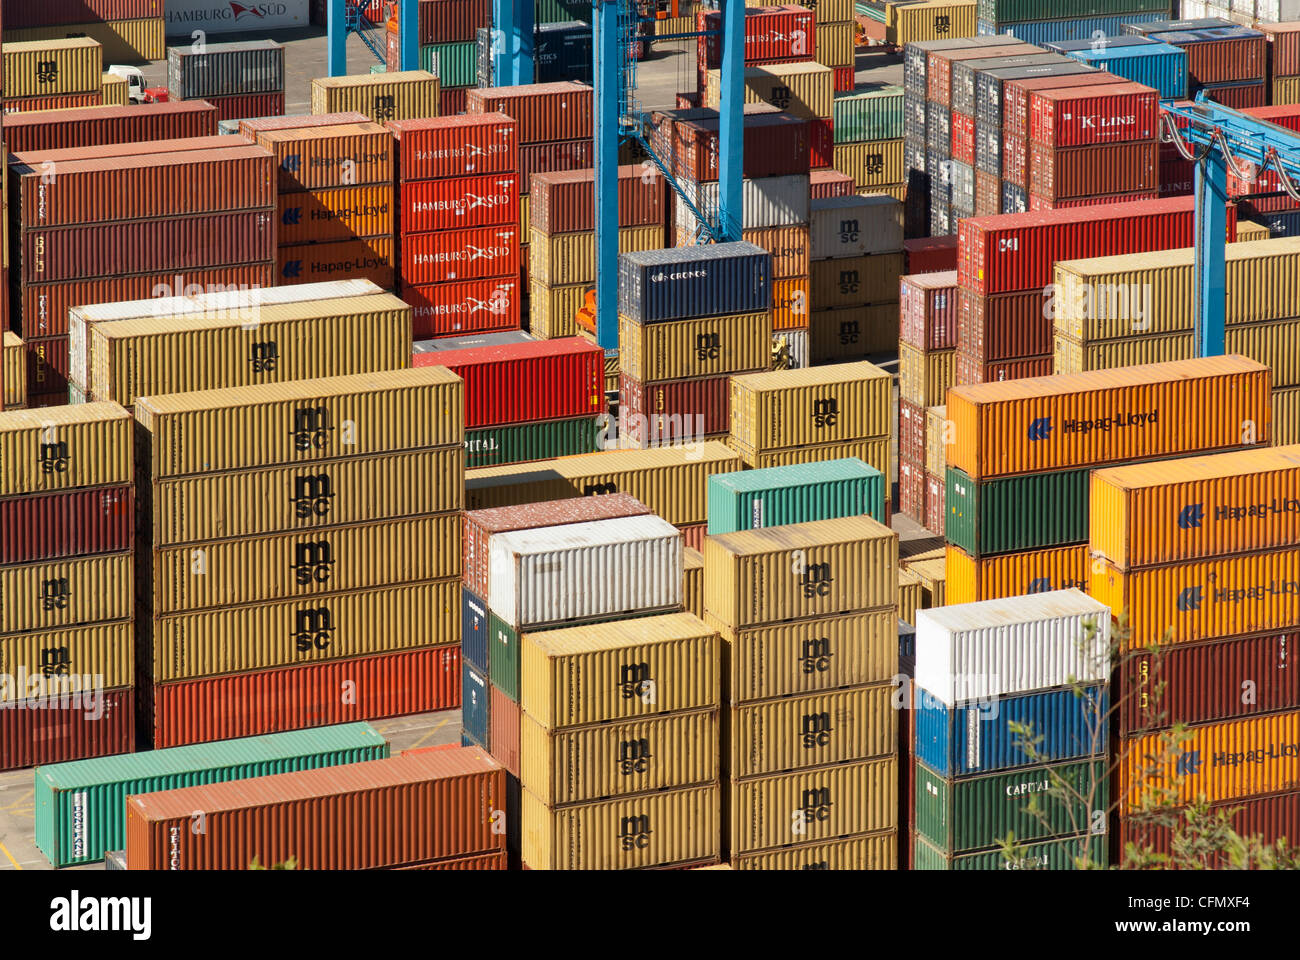 Shipping containers in Valparaíso, Chile - Stock Image